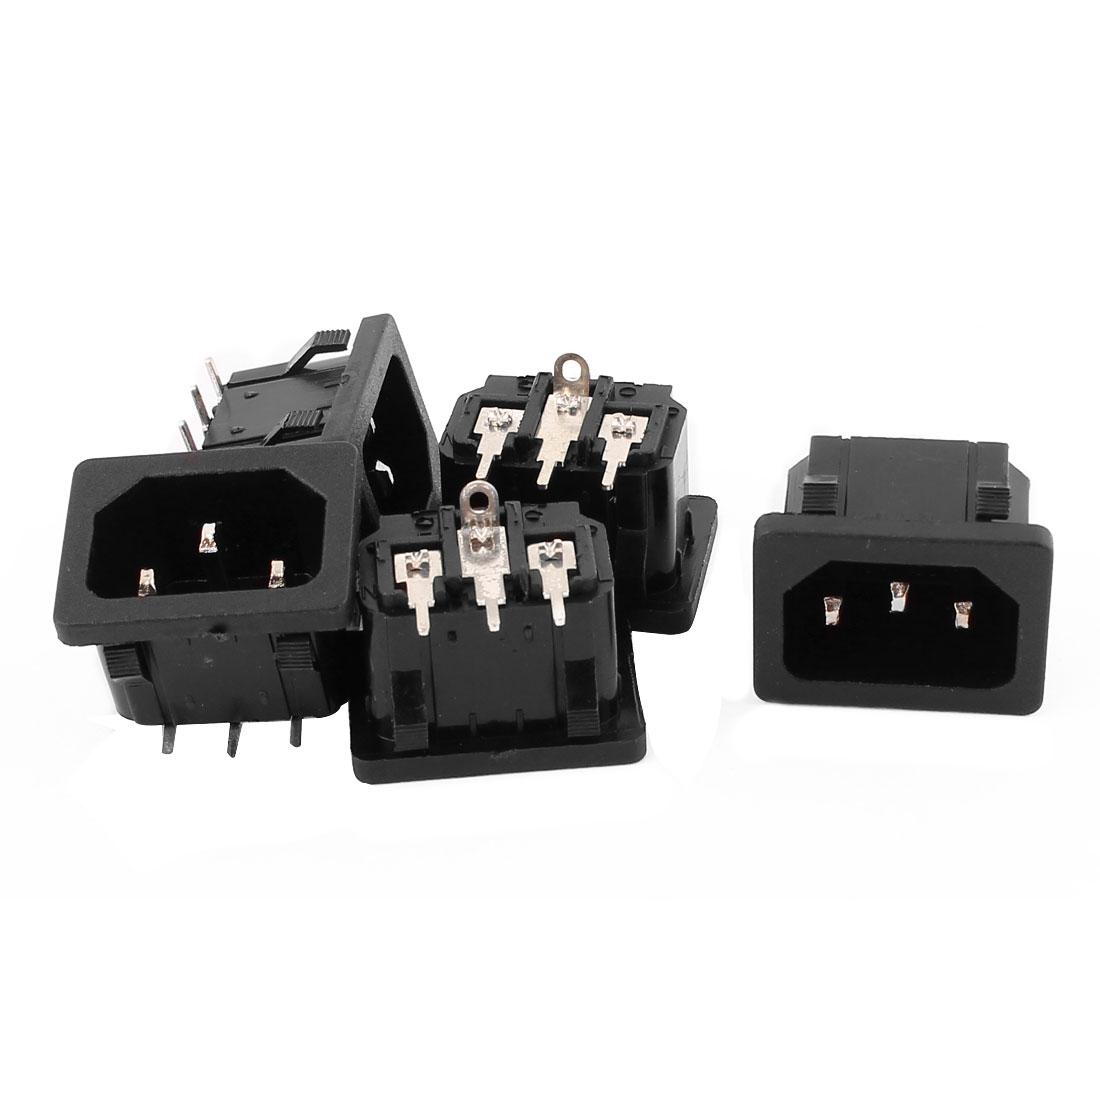 5Pcs AC 250V 10A 90 Degrees 3 Terminals Inlet Power Socket Adapter Convertor